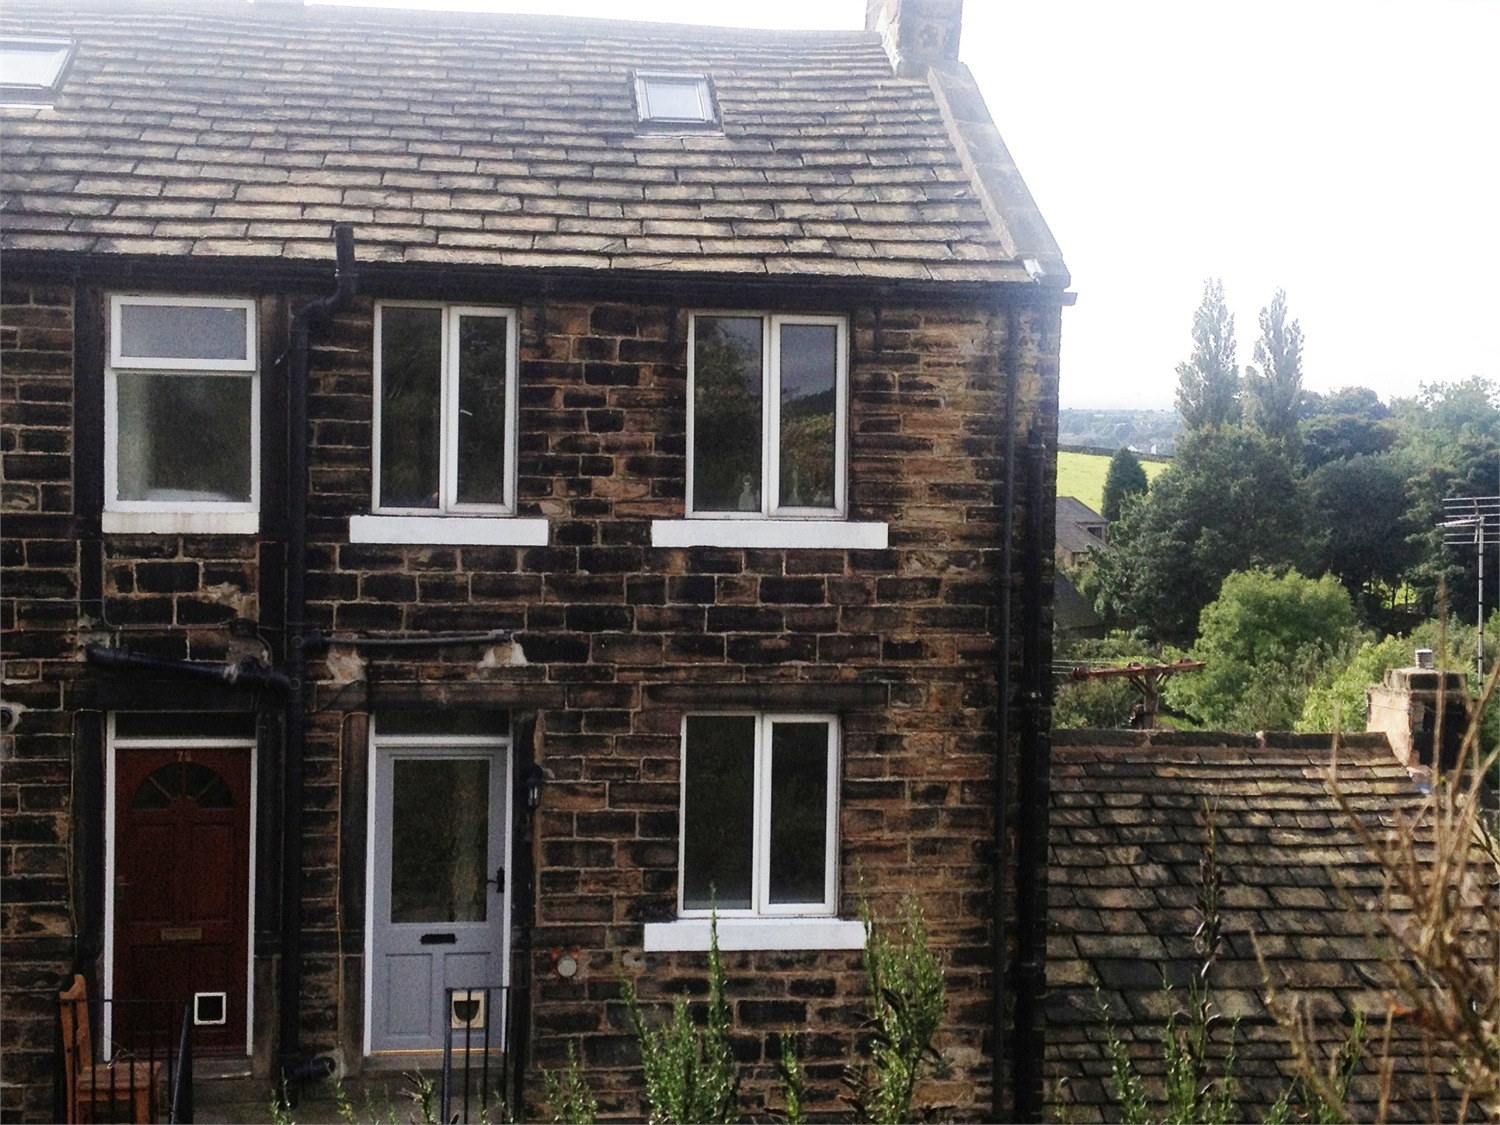 74 Sude Hill, New Mill,  Holmfirth, HD9 7ER